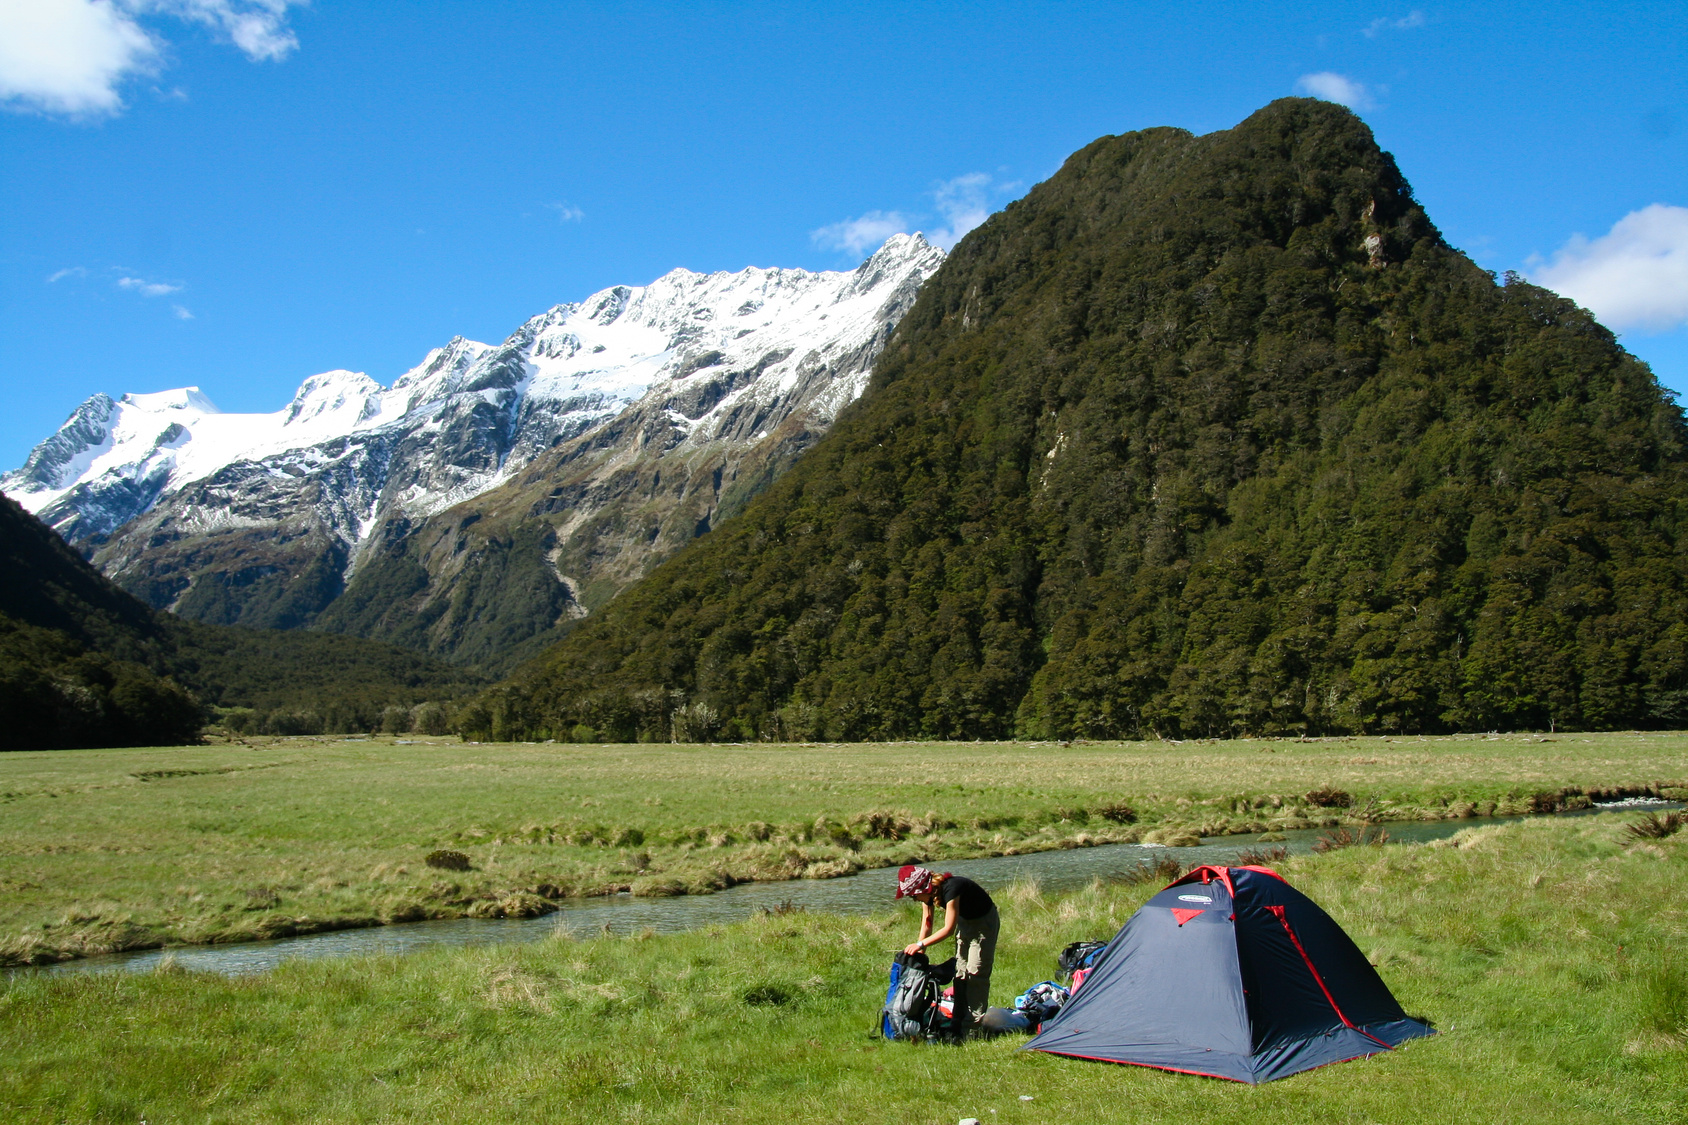 Camping on the Routeburn track